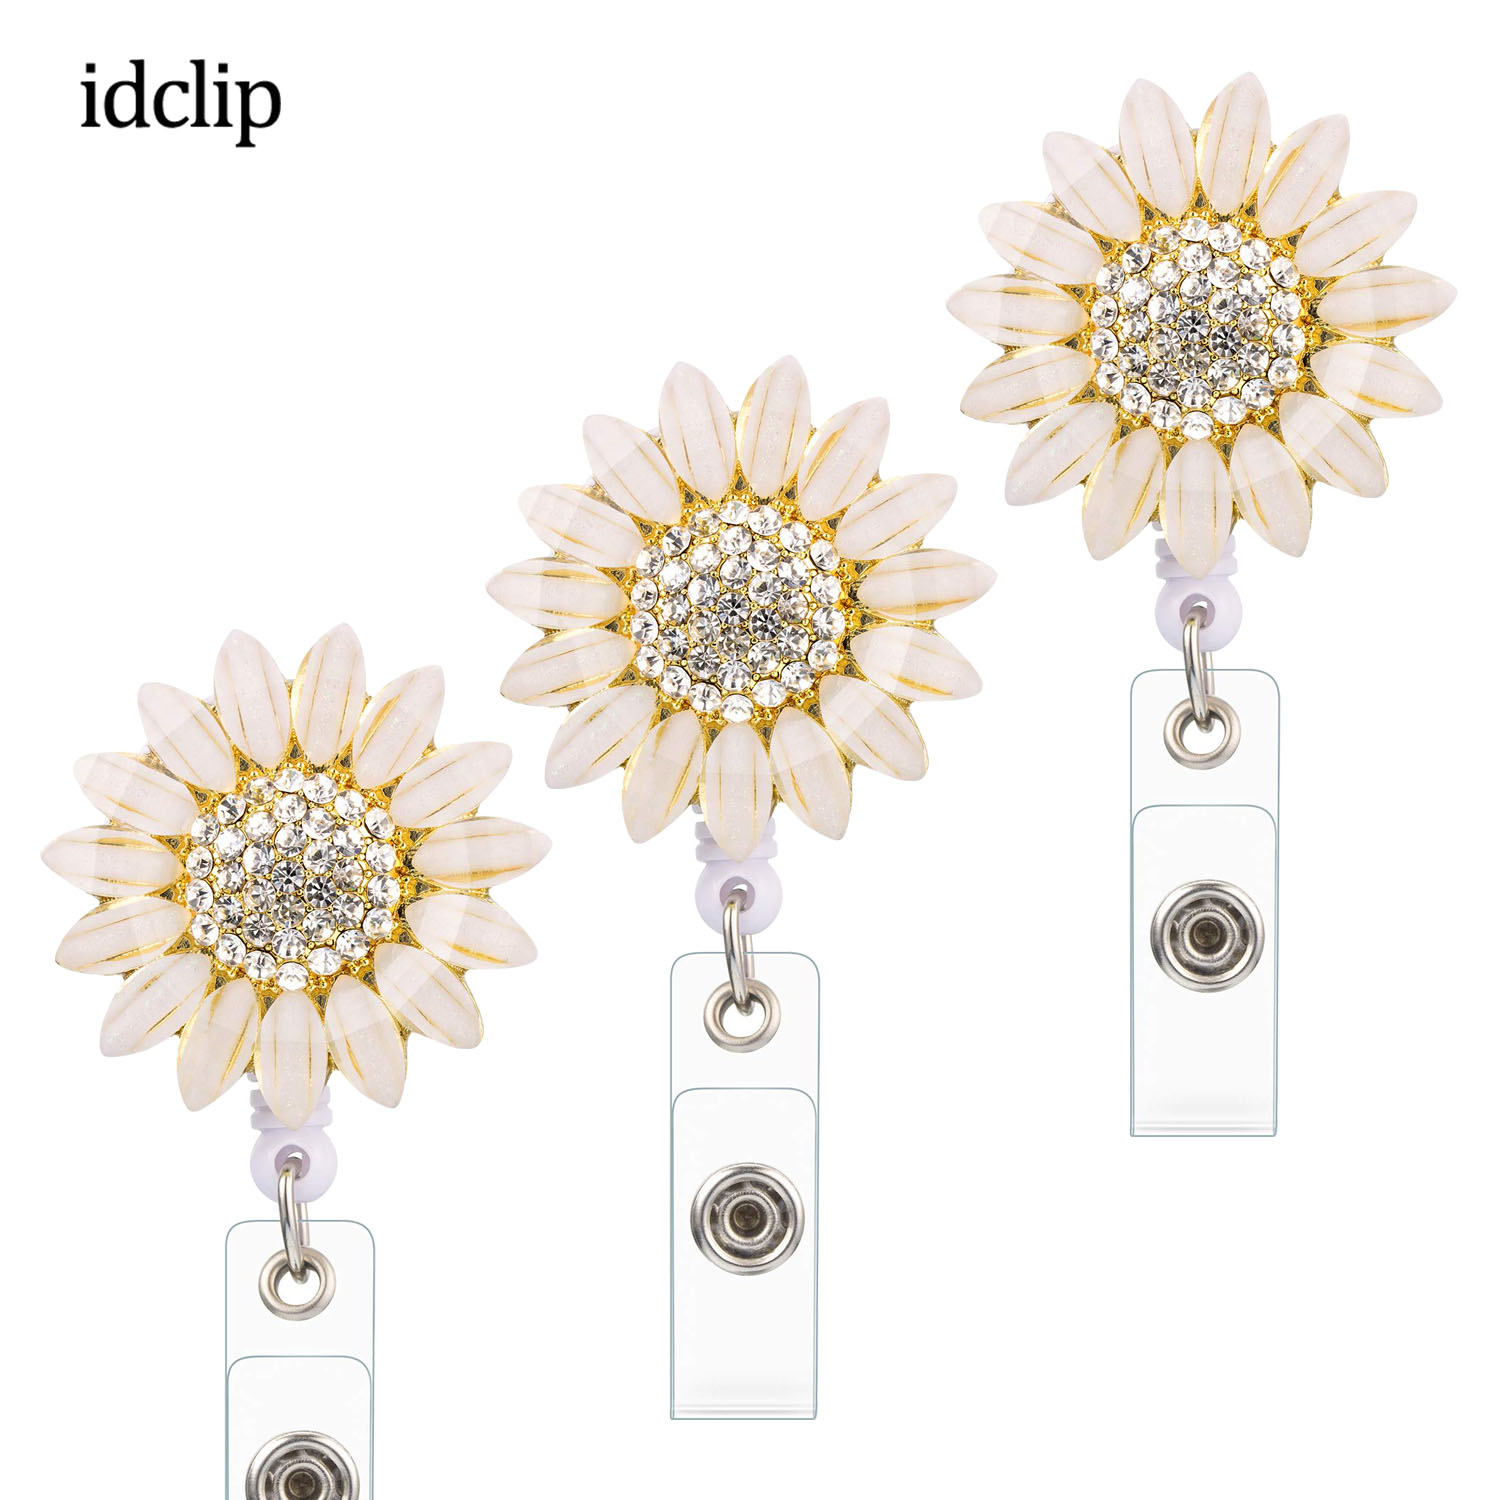 Idclip 3 Pieces Rhinestone Flower Retractable Badge Holder Reel ID Card Holder With Alligator Badge Clip